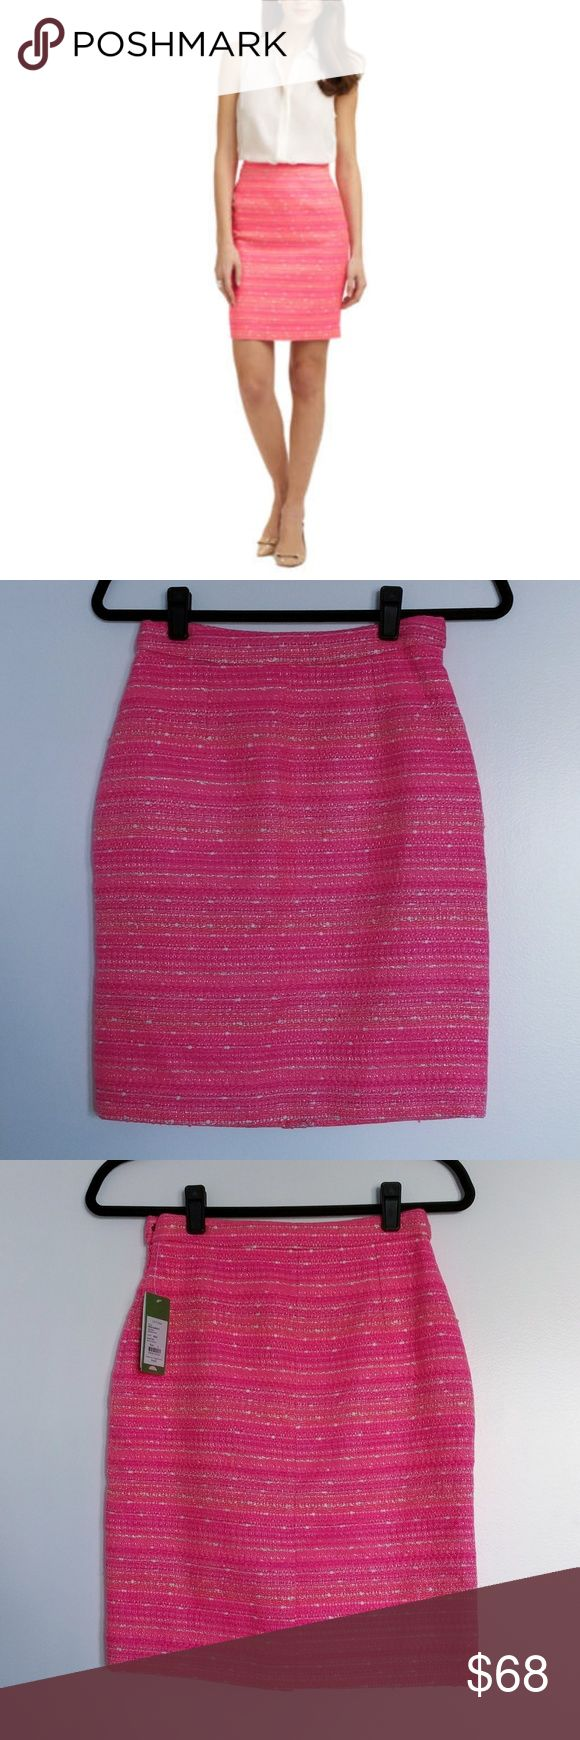 Lilly Pulitzer Gerbera Neon Pink Pencil Skirt NWT Calling all pink lovers! This skirt is a vibrant shade of pink boucle with shades of coral, white and metallic thread woven throughout. Side zip and hook and eye closure. Fully lined in pink. Back slit (still sewn shut). Sorry, no trades. Lilly Pulitzer Skirts Pencil